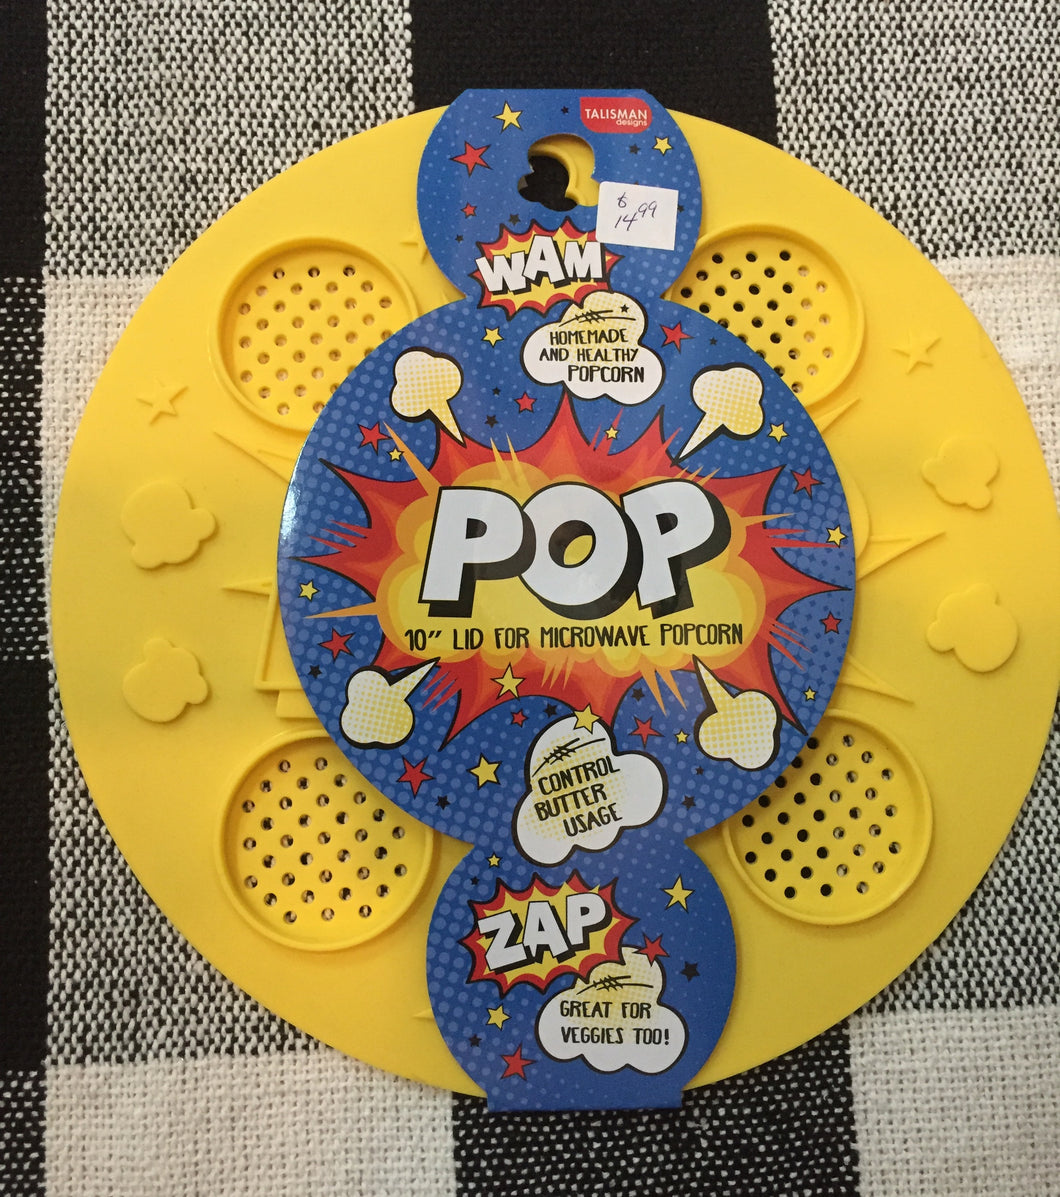 Popcorn  lid for microwave popcorn